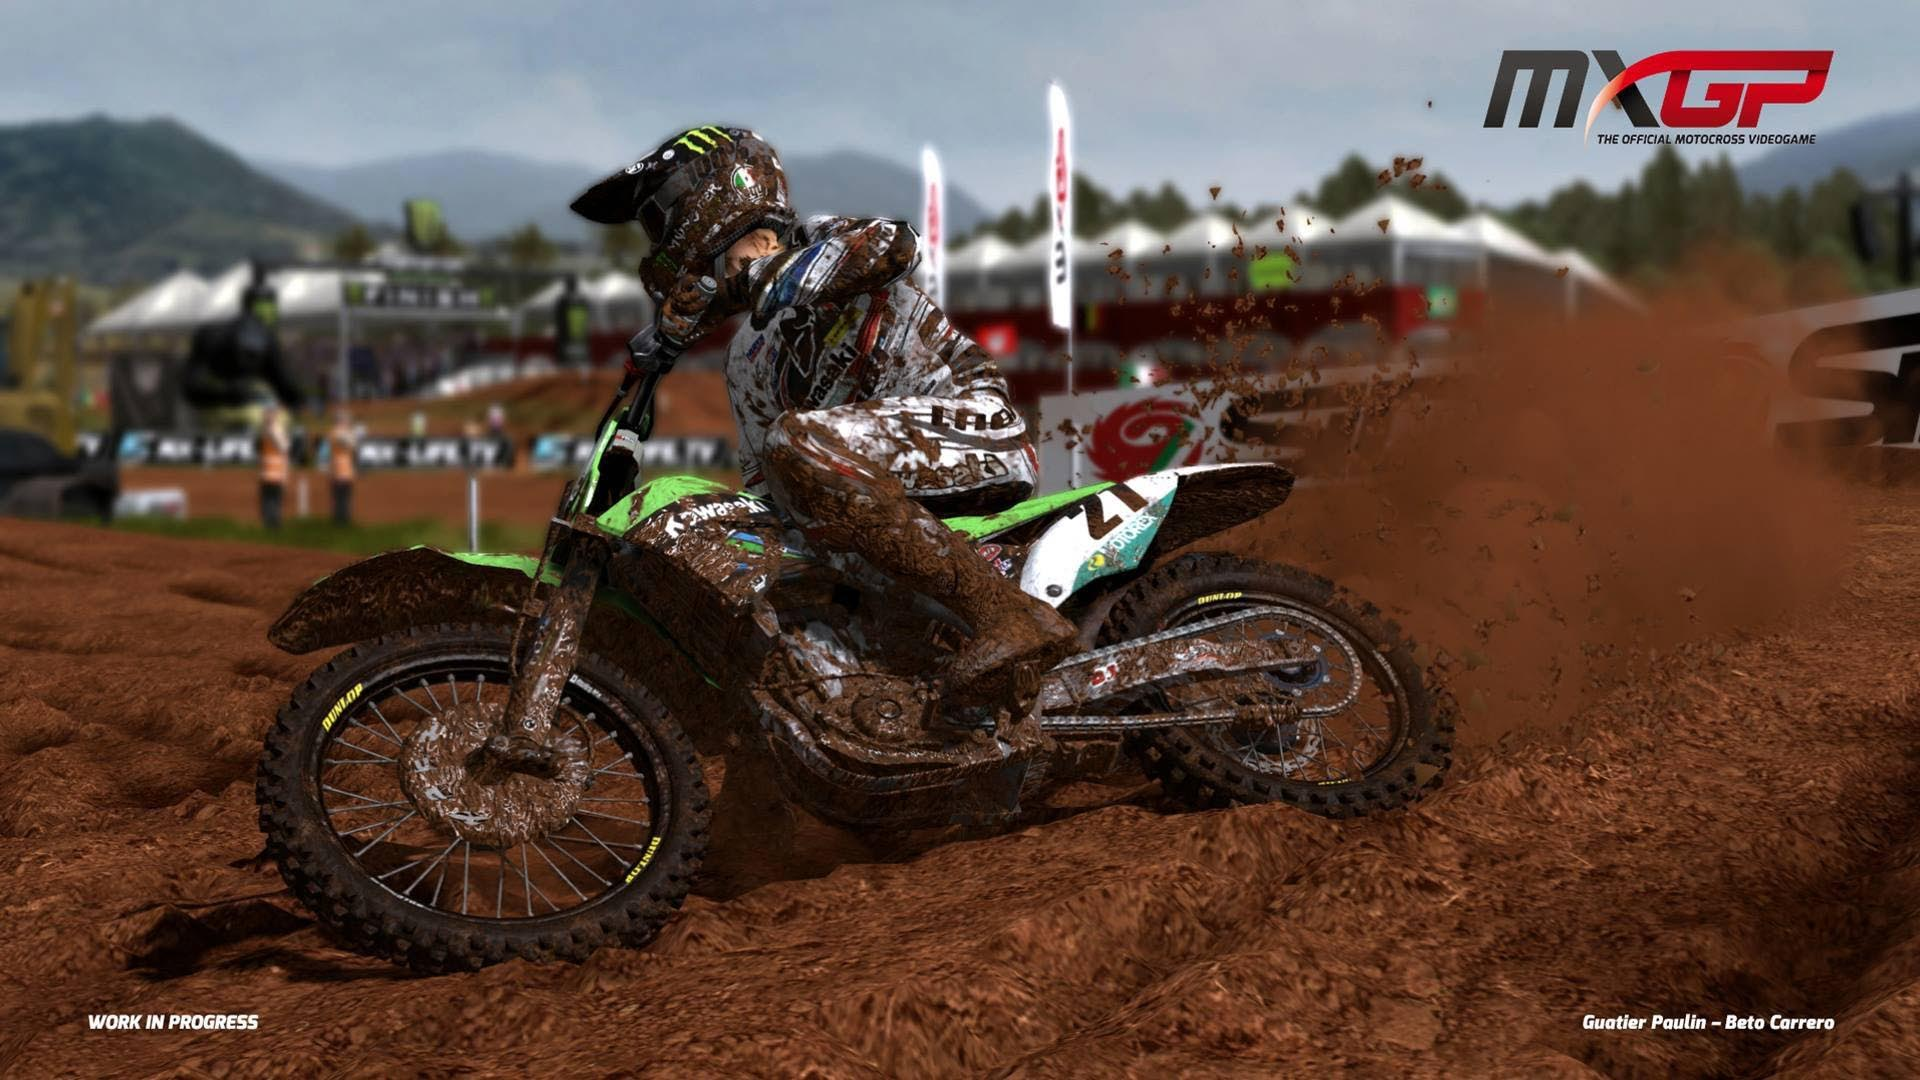 If you prefer arcade-style games, or if you want to race dirt bikes, pick this one. In Motocross, agility and quick reflexes matter a lot more than taking a clean line through a turn. The races can devolve into absolute chaos and collisions are commonplace. While clean riding will take you ahead of the pack and guarantee a win, there's plenty of fun to be had in the fray. | <b>For:</b> PC, PS4, PS3, Xbox 360, Vita